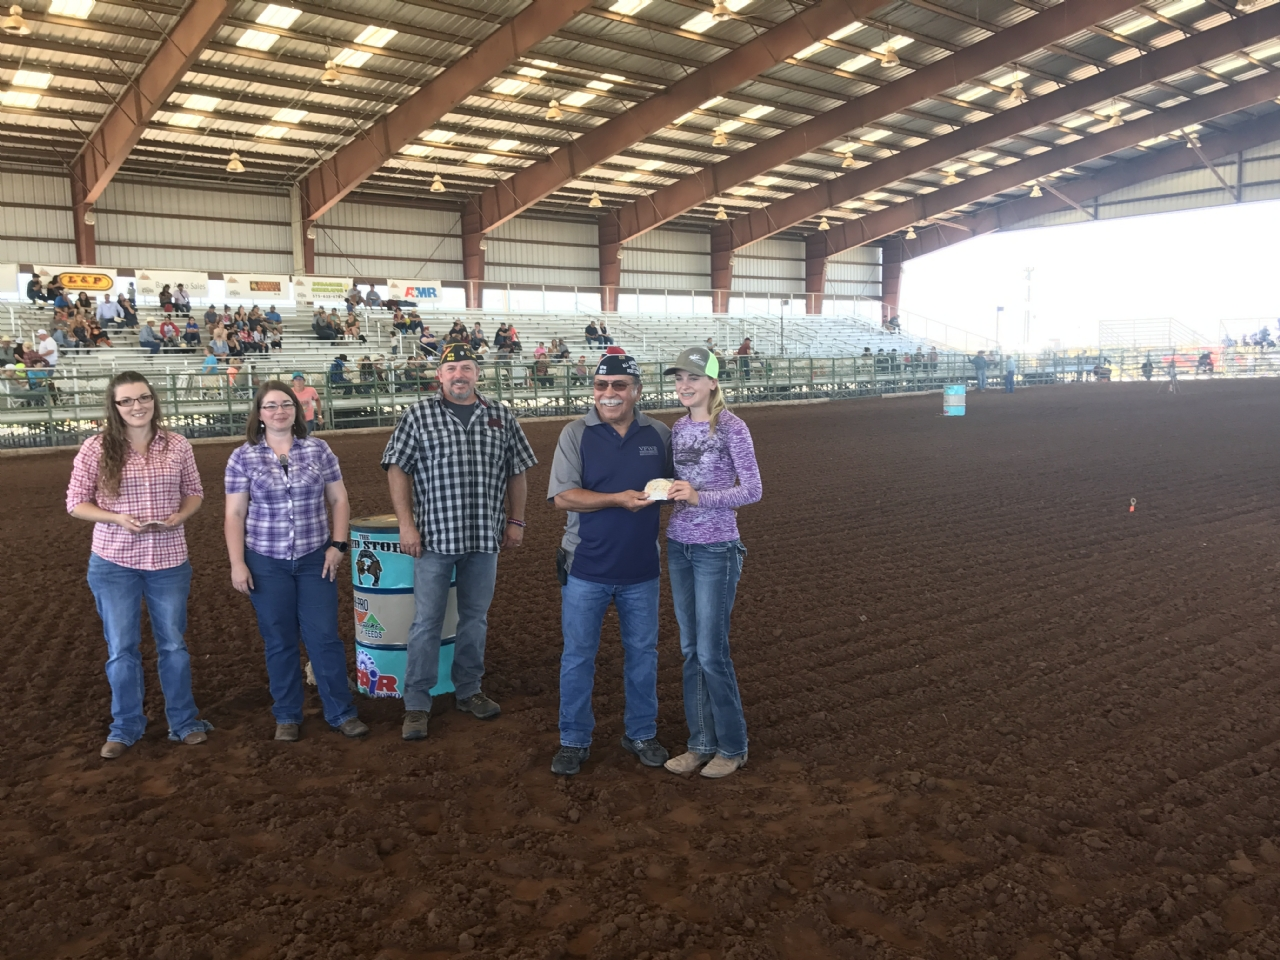 On 1 Oct 2017 VFW Post 6917 sponsored the Southern New Mexico State Fair Youth Barrel Race. Presenting the buckles to these young and talented cowgirls was Raul Sanchez and Rob Easley, This young lady won BOTH the 1D and 3D buckles.